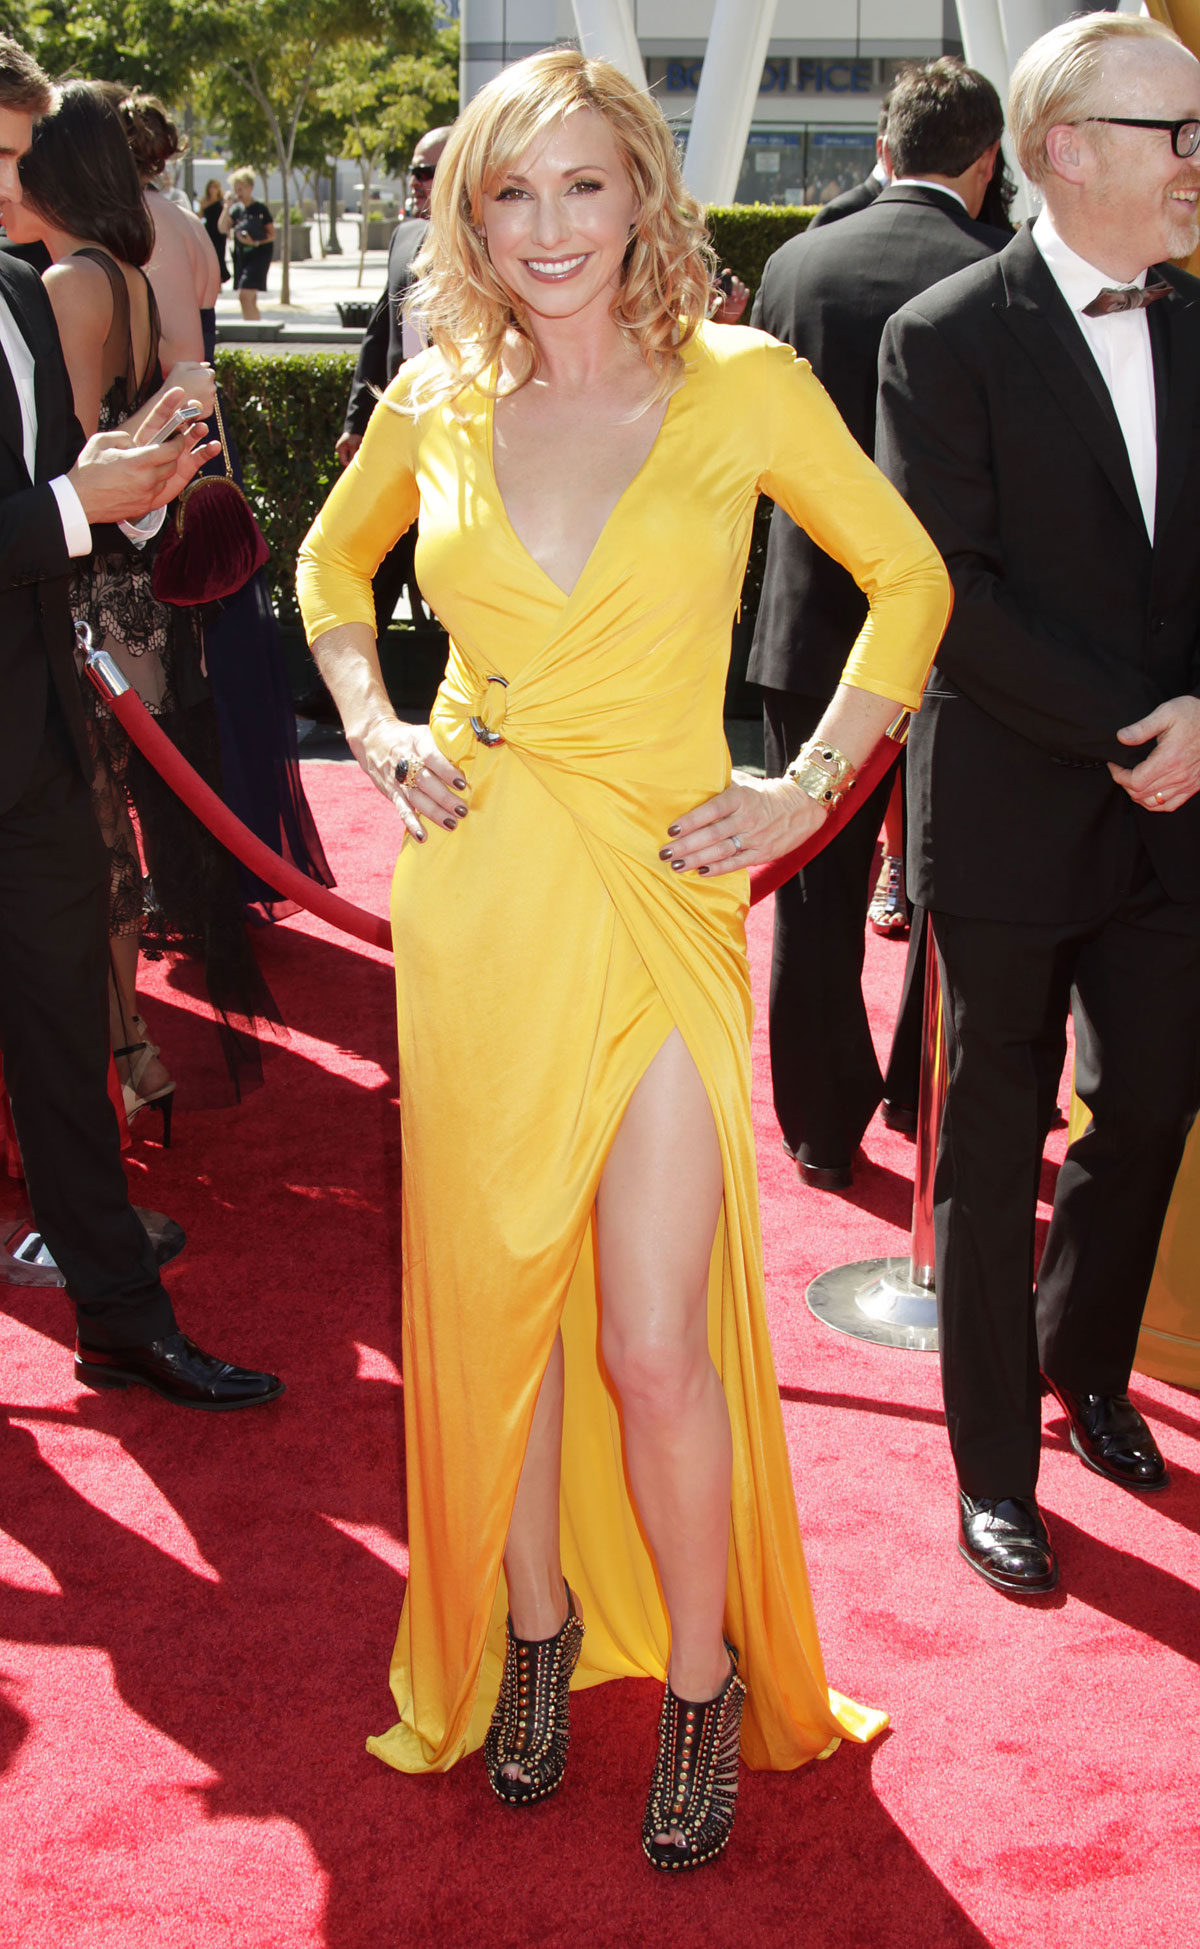 Kari Byron posing for a picture wearing a beautiful yellow dress